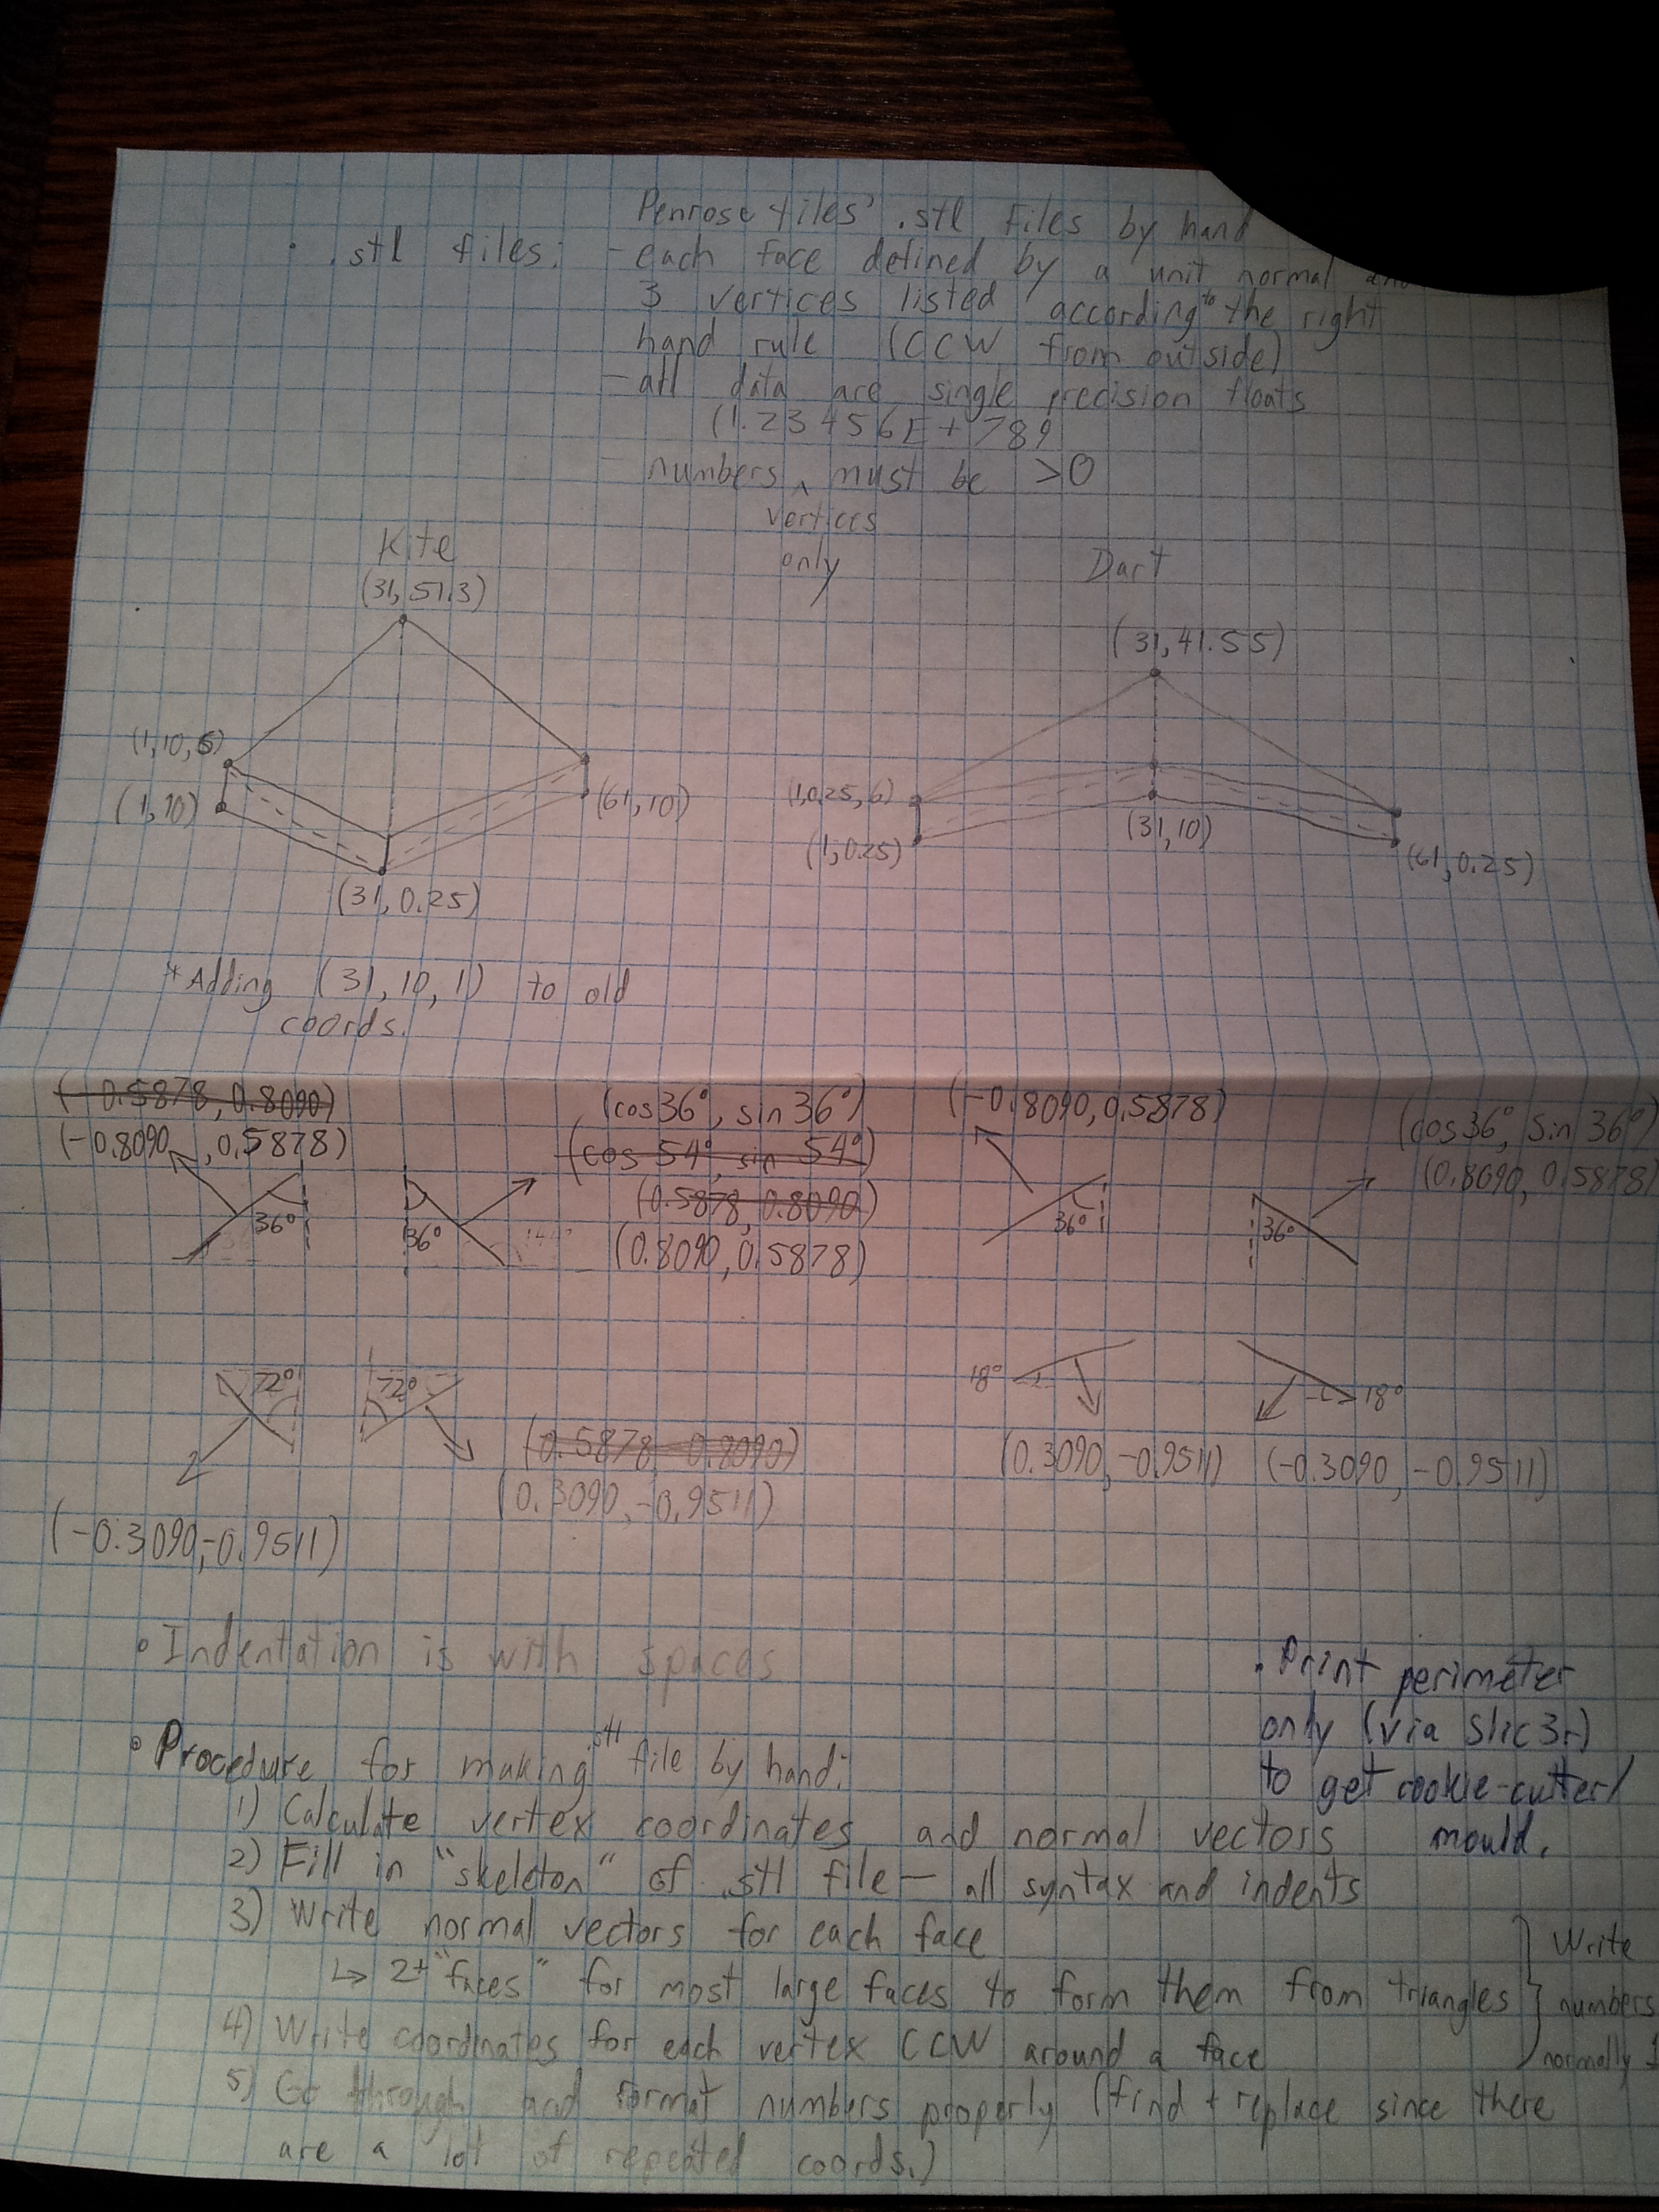 Sketch/calculations page 2